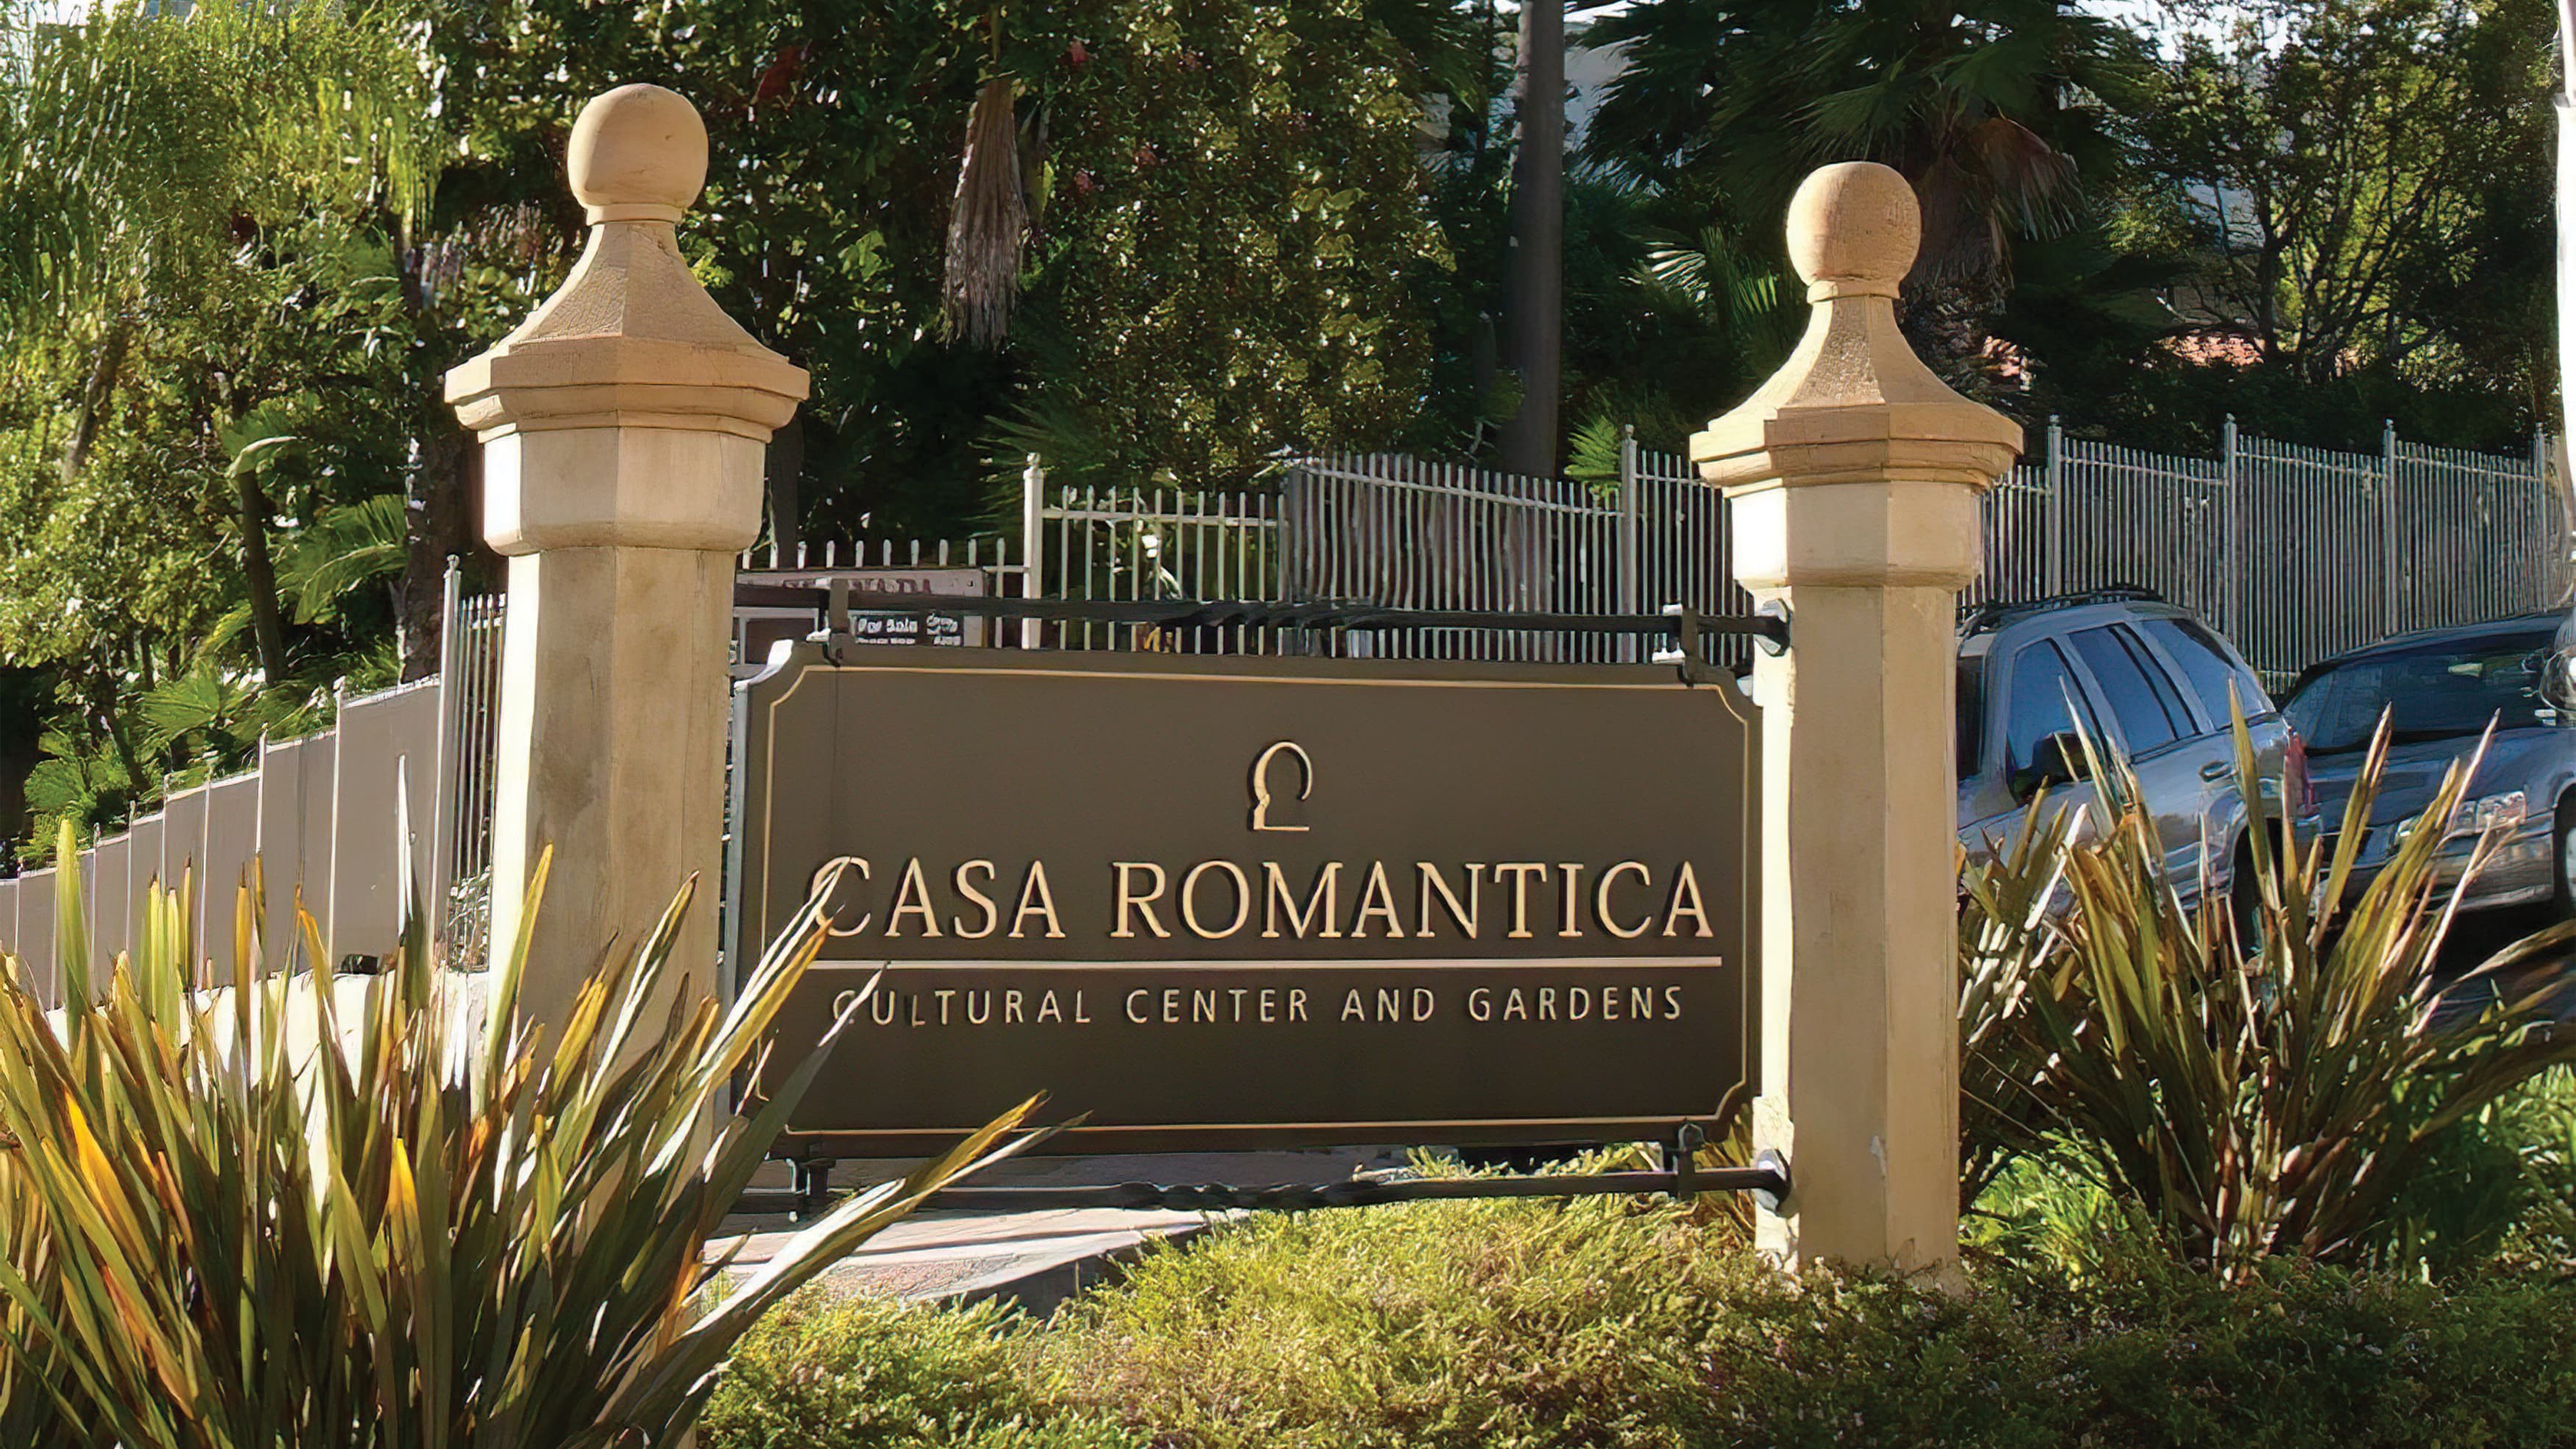 A photograph of a post and panel sign displaying Casa Romantica identity